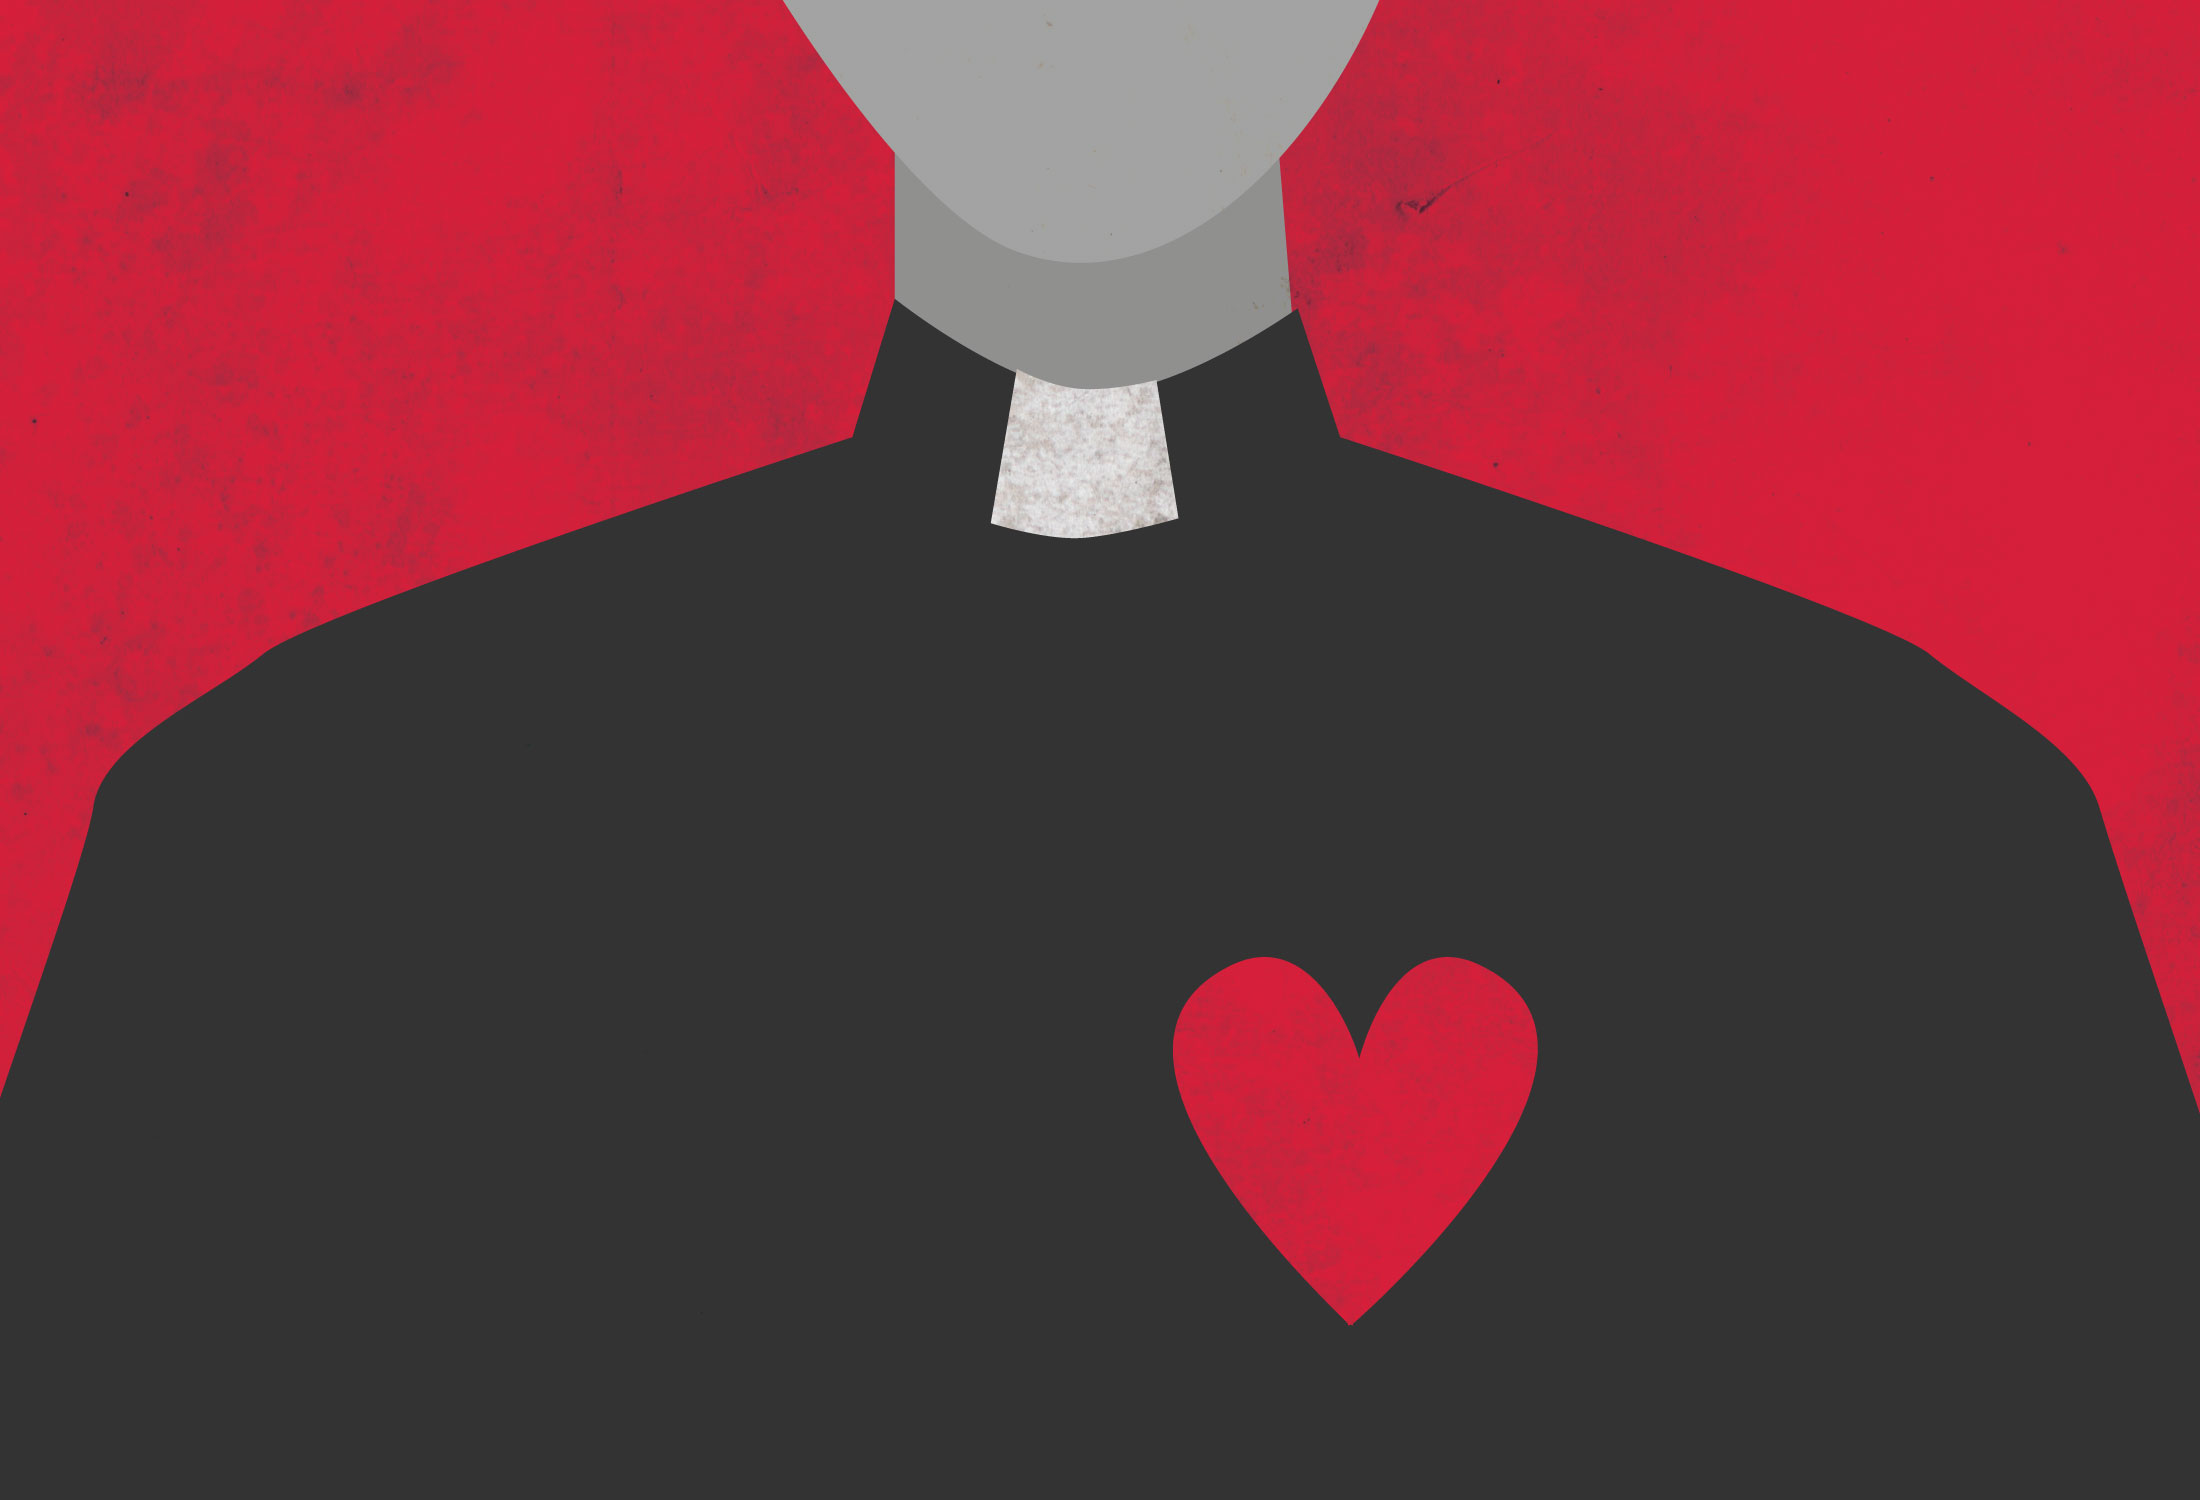 I've spent 30 years counseling priests who fall in love. Here's what I learned. - Vox